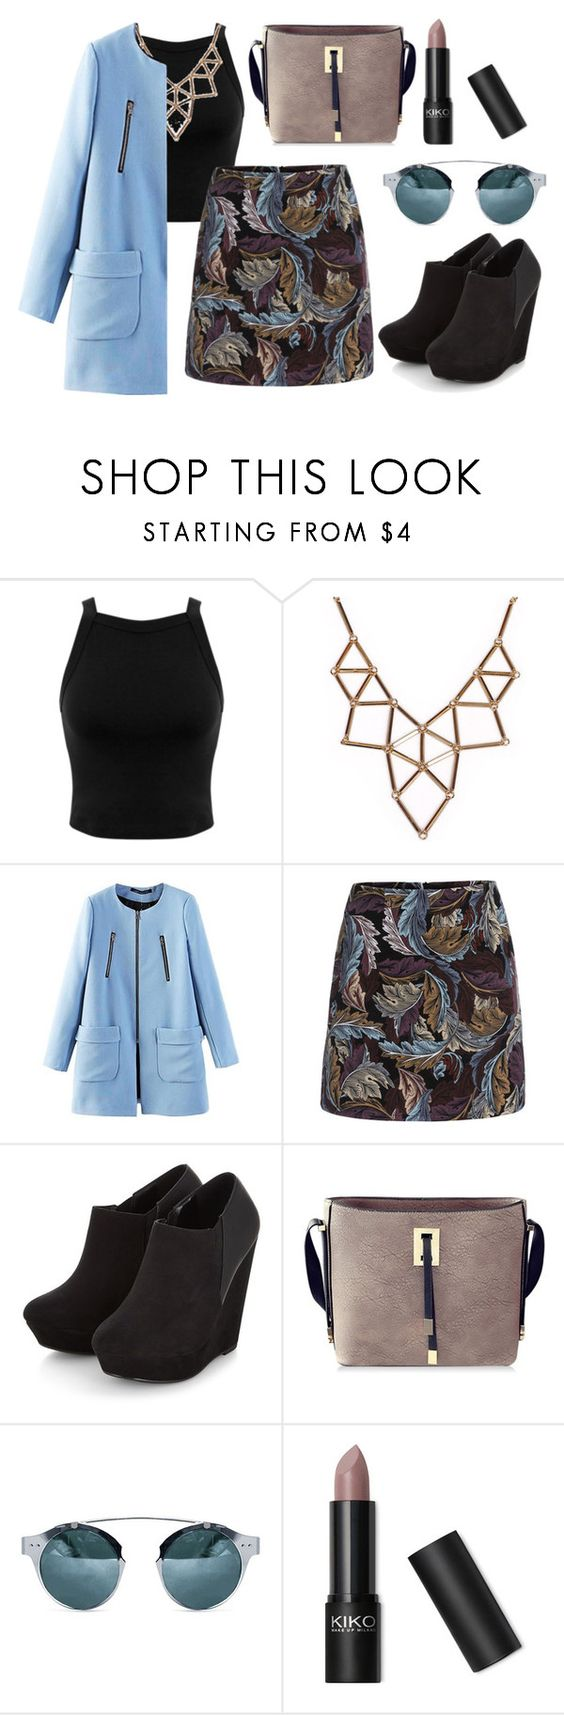 """Nameit  #71"" by ericakslzr on Polyvore featuring Miss Selfridge and Chicnova Fashion"